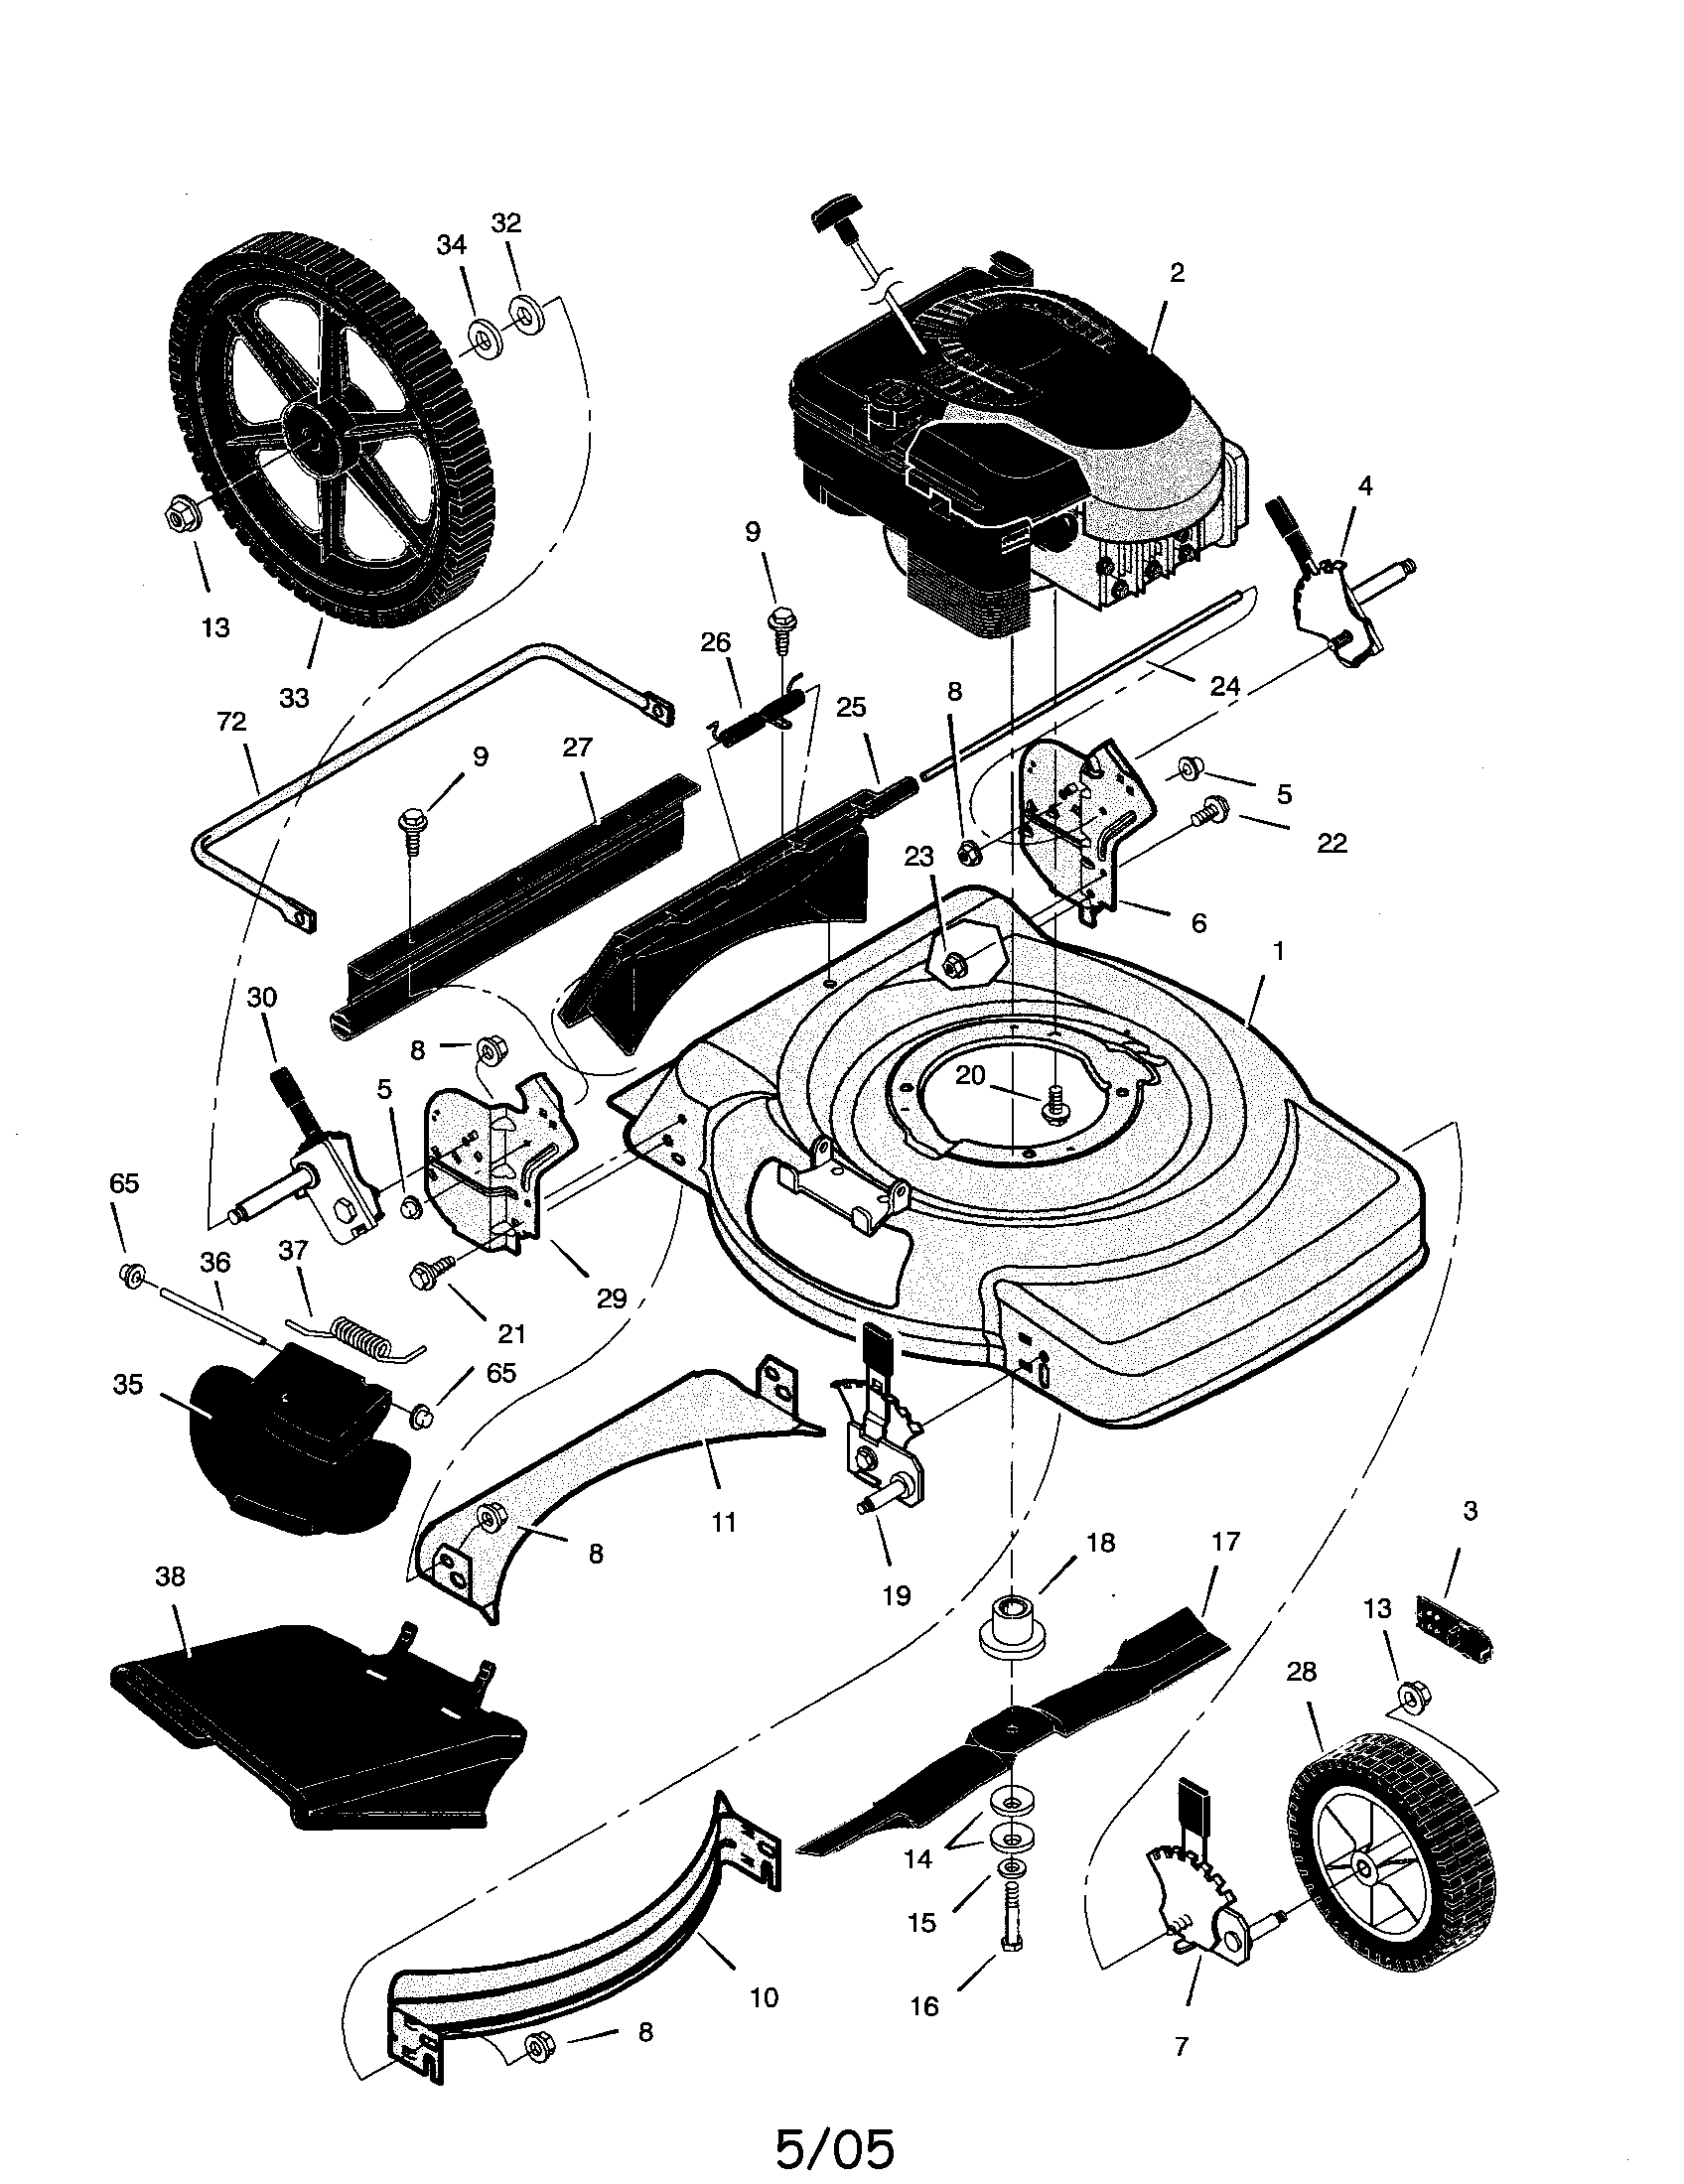 handle assembly diagram parts list for model 22315x8c murrayparts